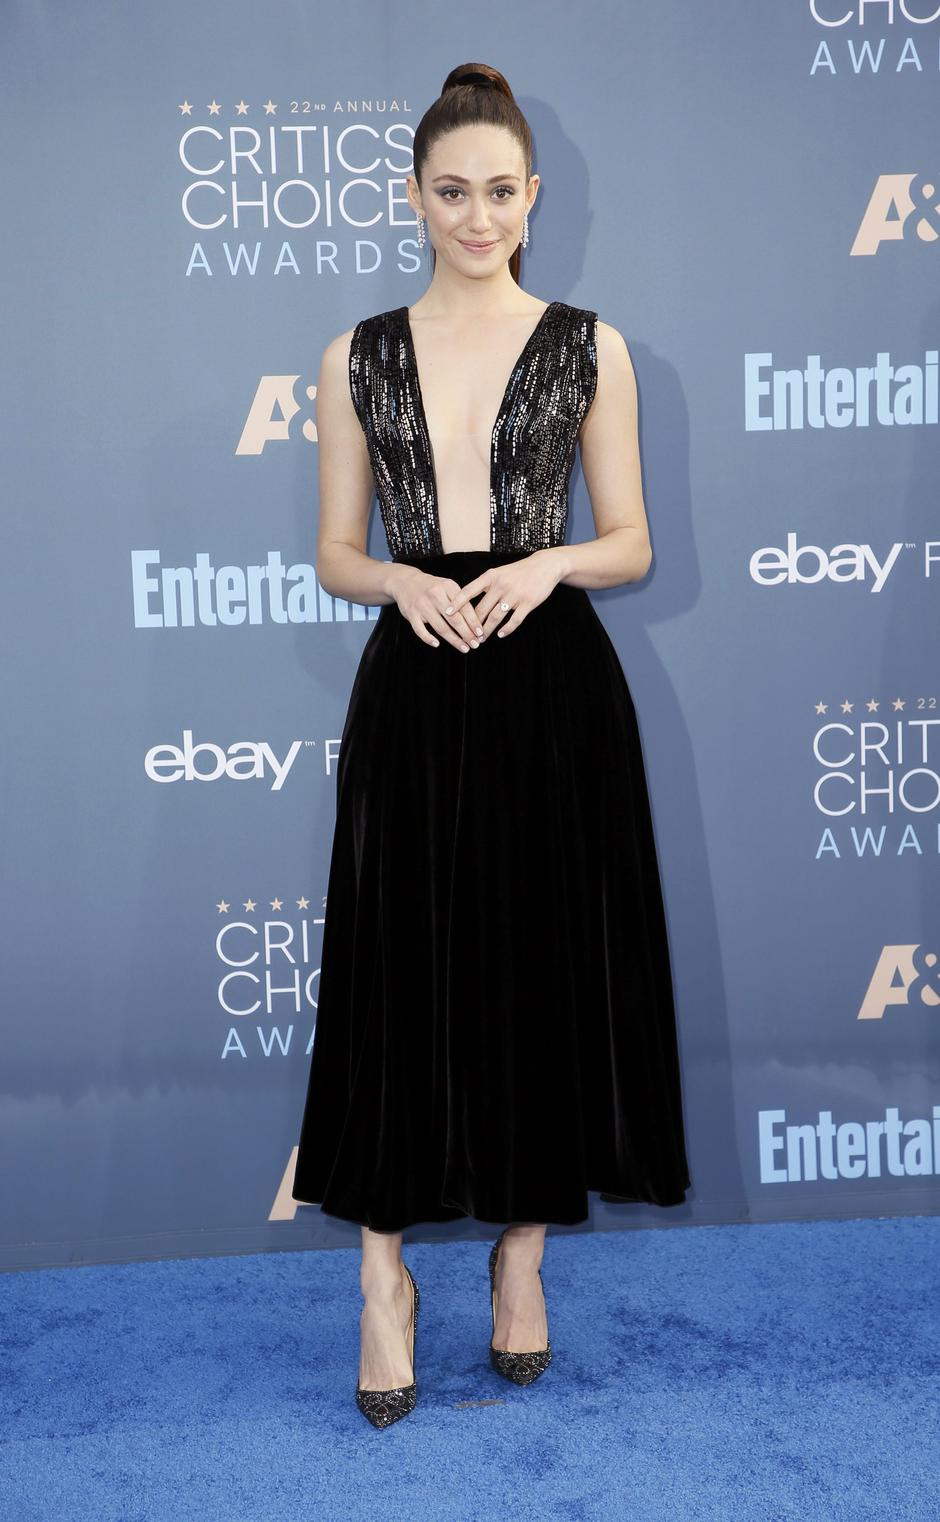 Actress Emmy Rossum arrives at the 22nd Annual Critics' Choice Awards in Santa Monica | Autor: DANNY MOLOSHOK